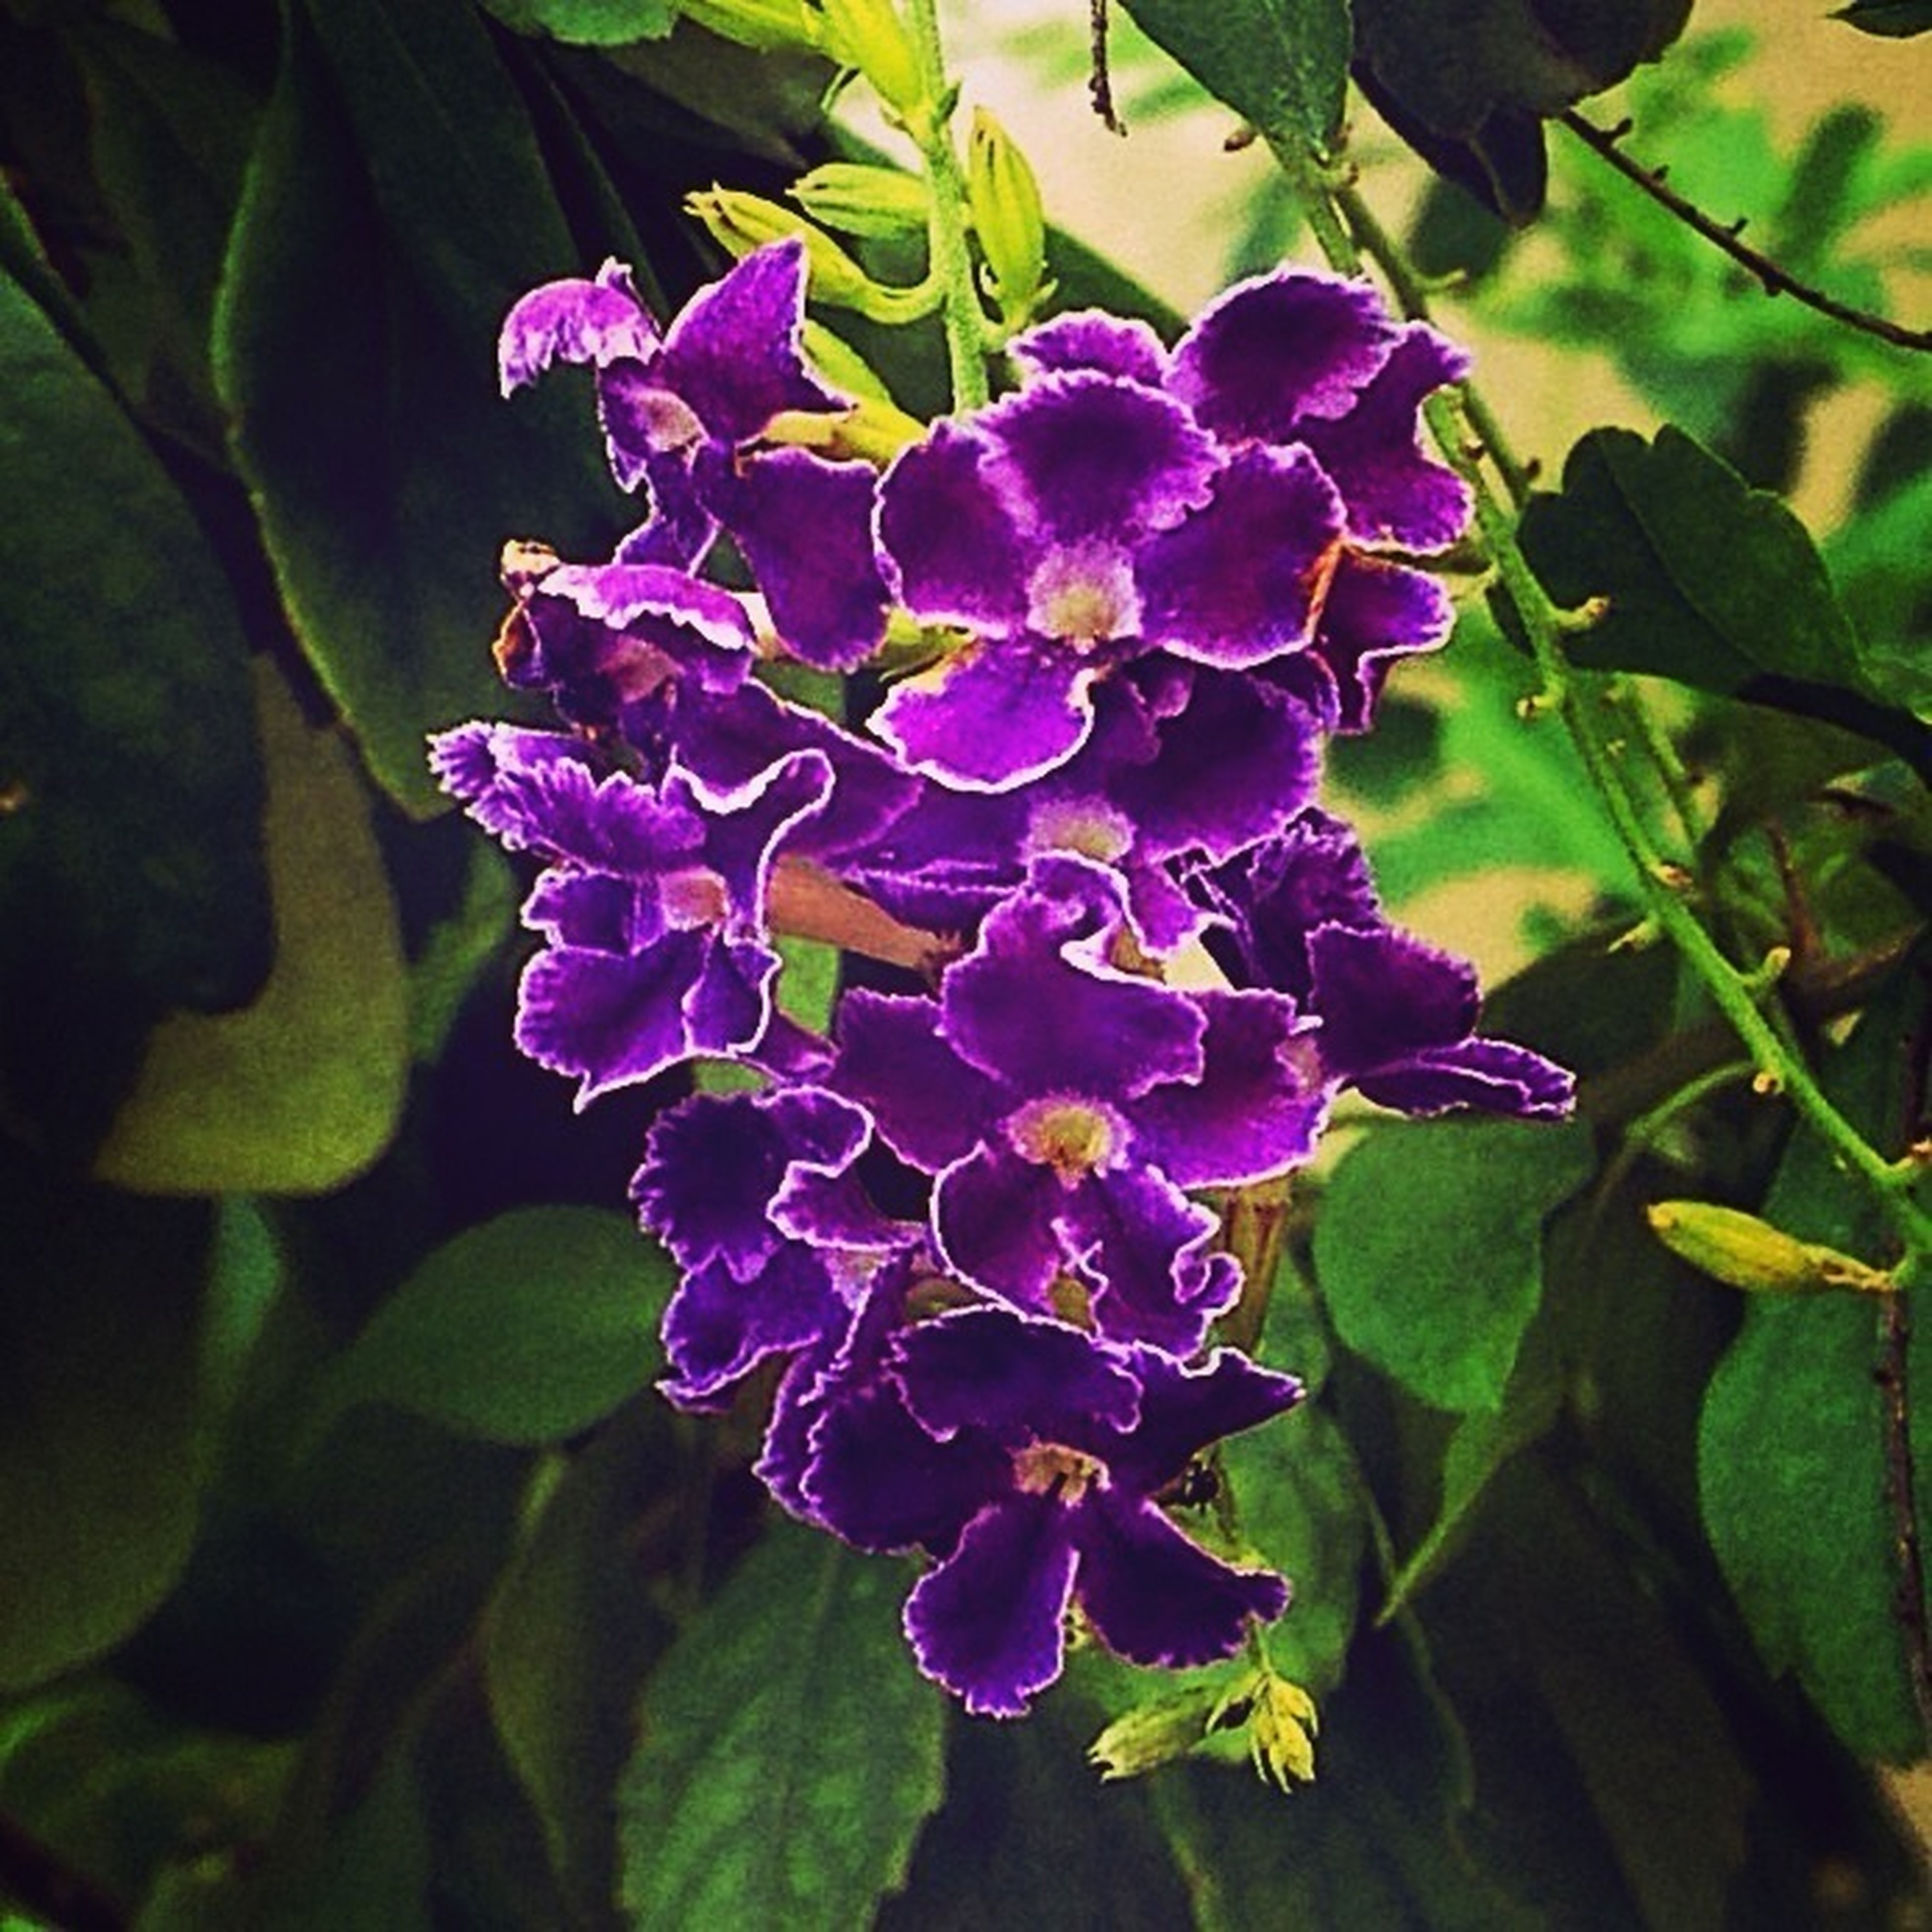 flower, freshness, purple, petal, growth, fragility, flower head, beauty in nature, leaf, close-up, plant, blooming, nature, focus on foreground, in bloom, green color, park - man made space, blossom, outdoors, no people